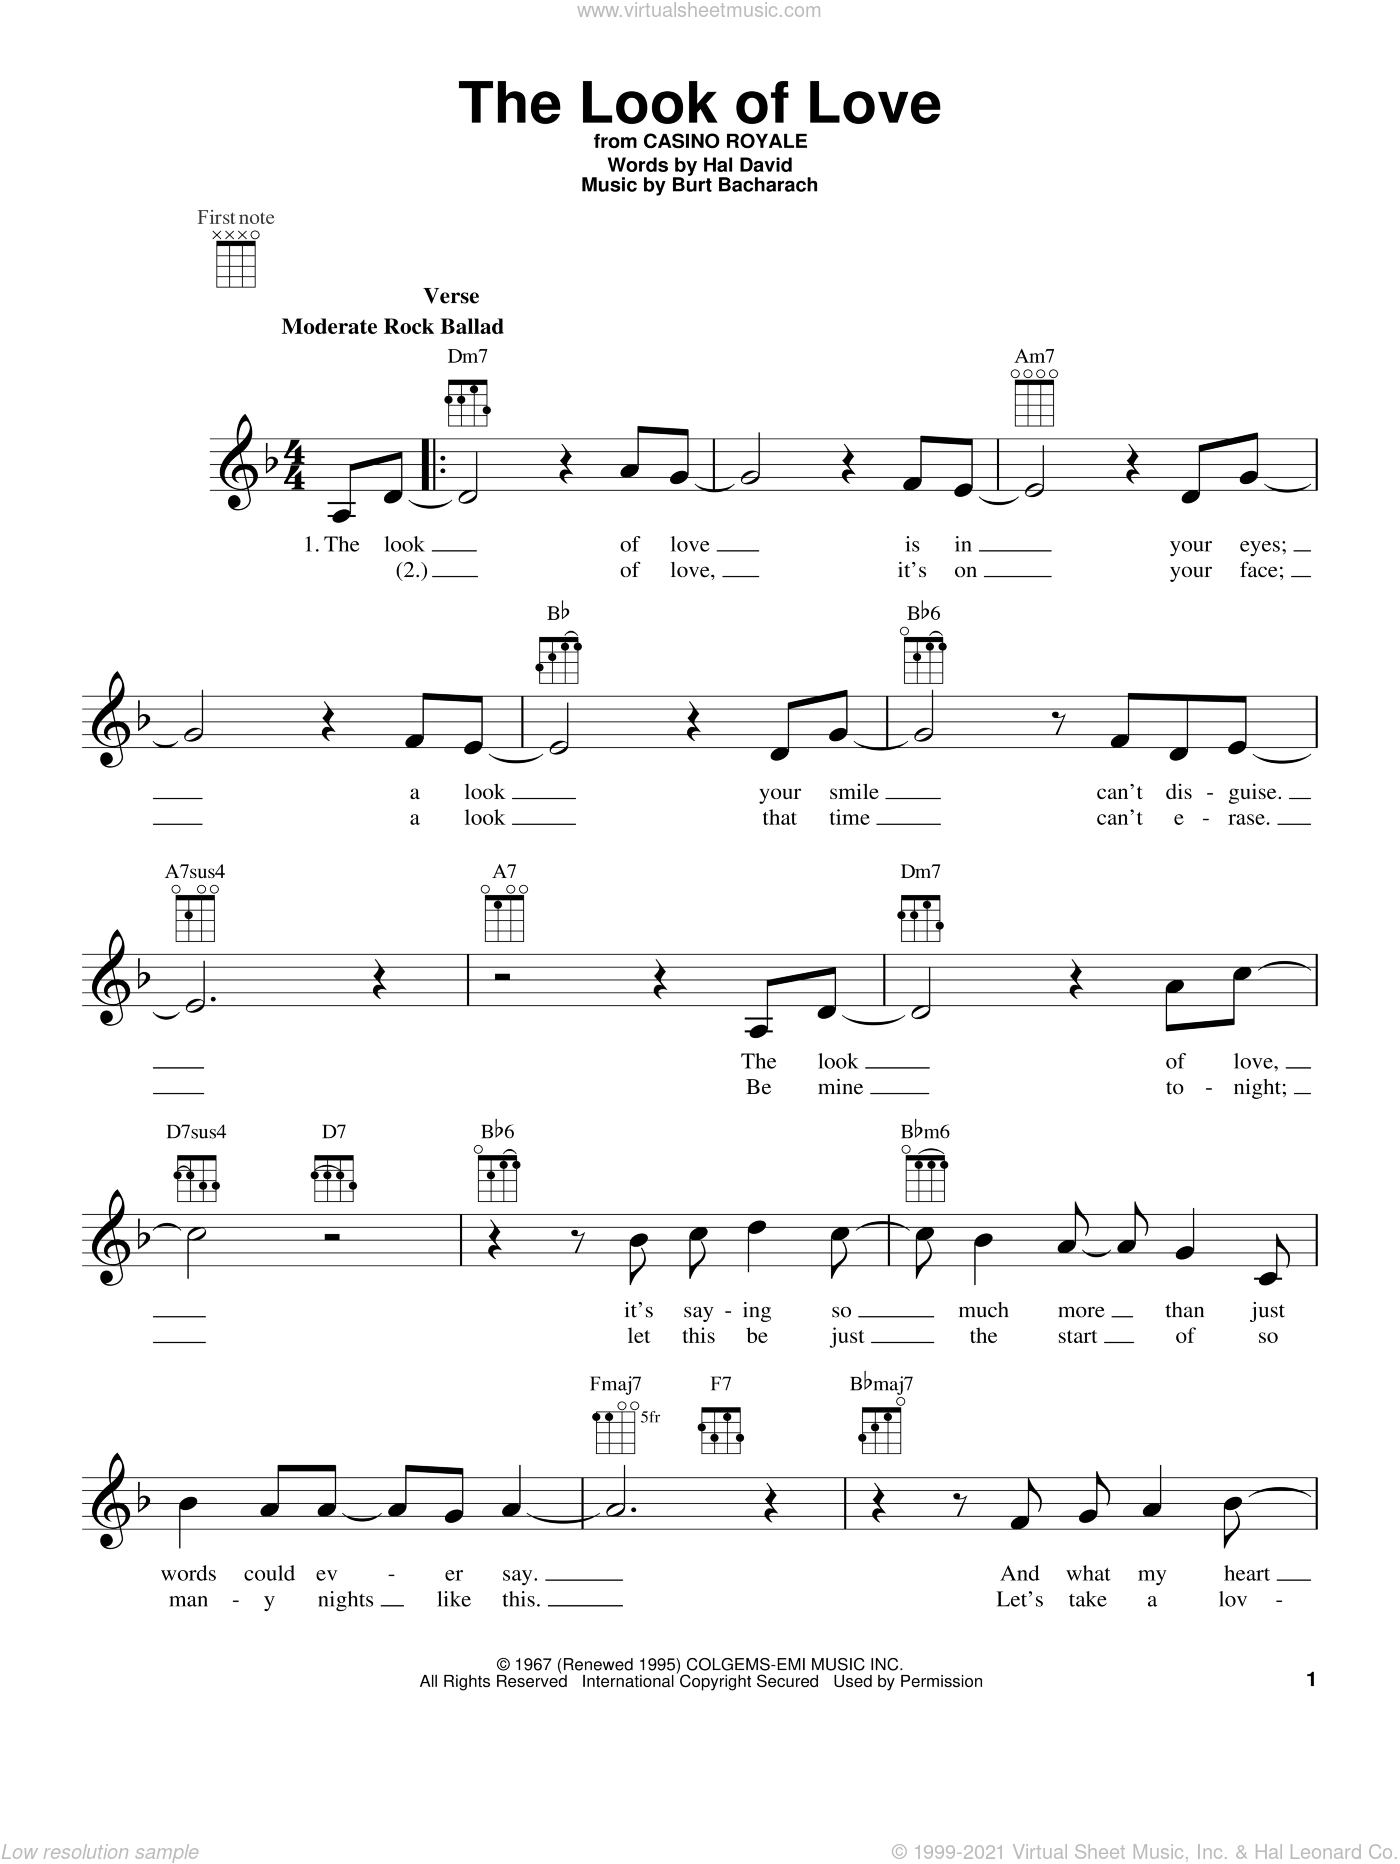 The Look Of Love sheet music for ukulele by Sergio Mendes & Brasil '66, Burt Bacharach and Hal David, intermediate. Score Image Preview.